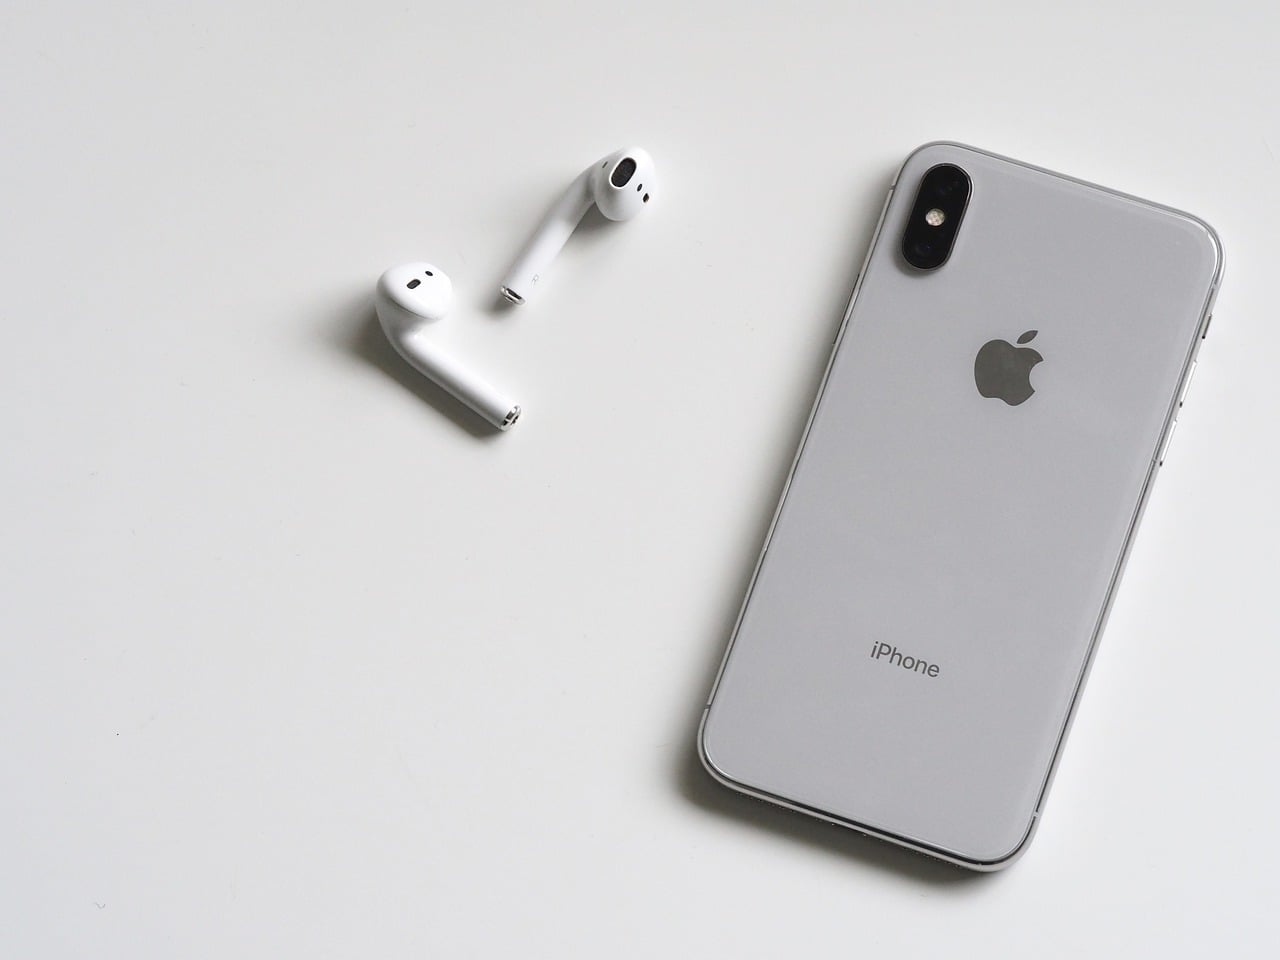 Apple AirPods vs Samsung Galaxy Buds